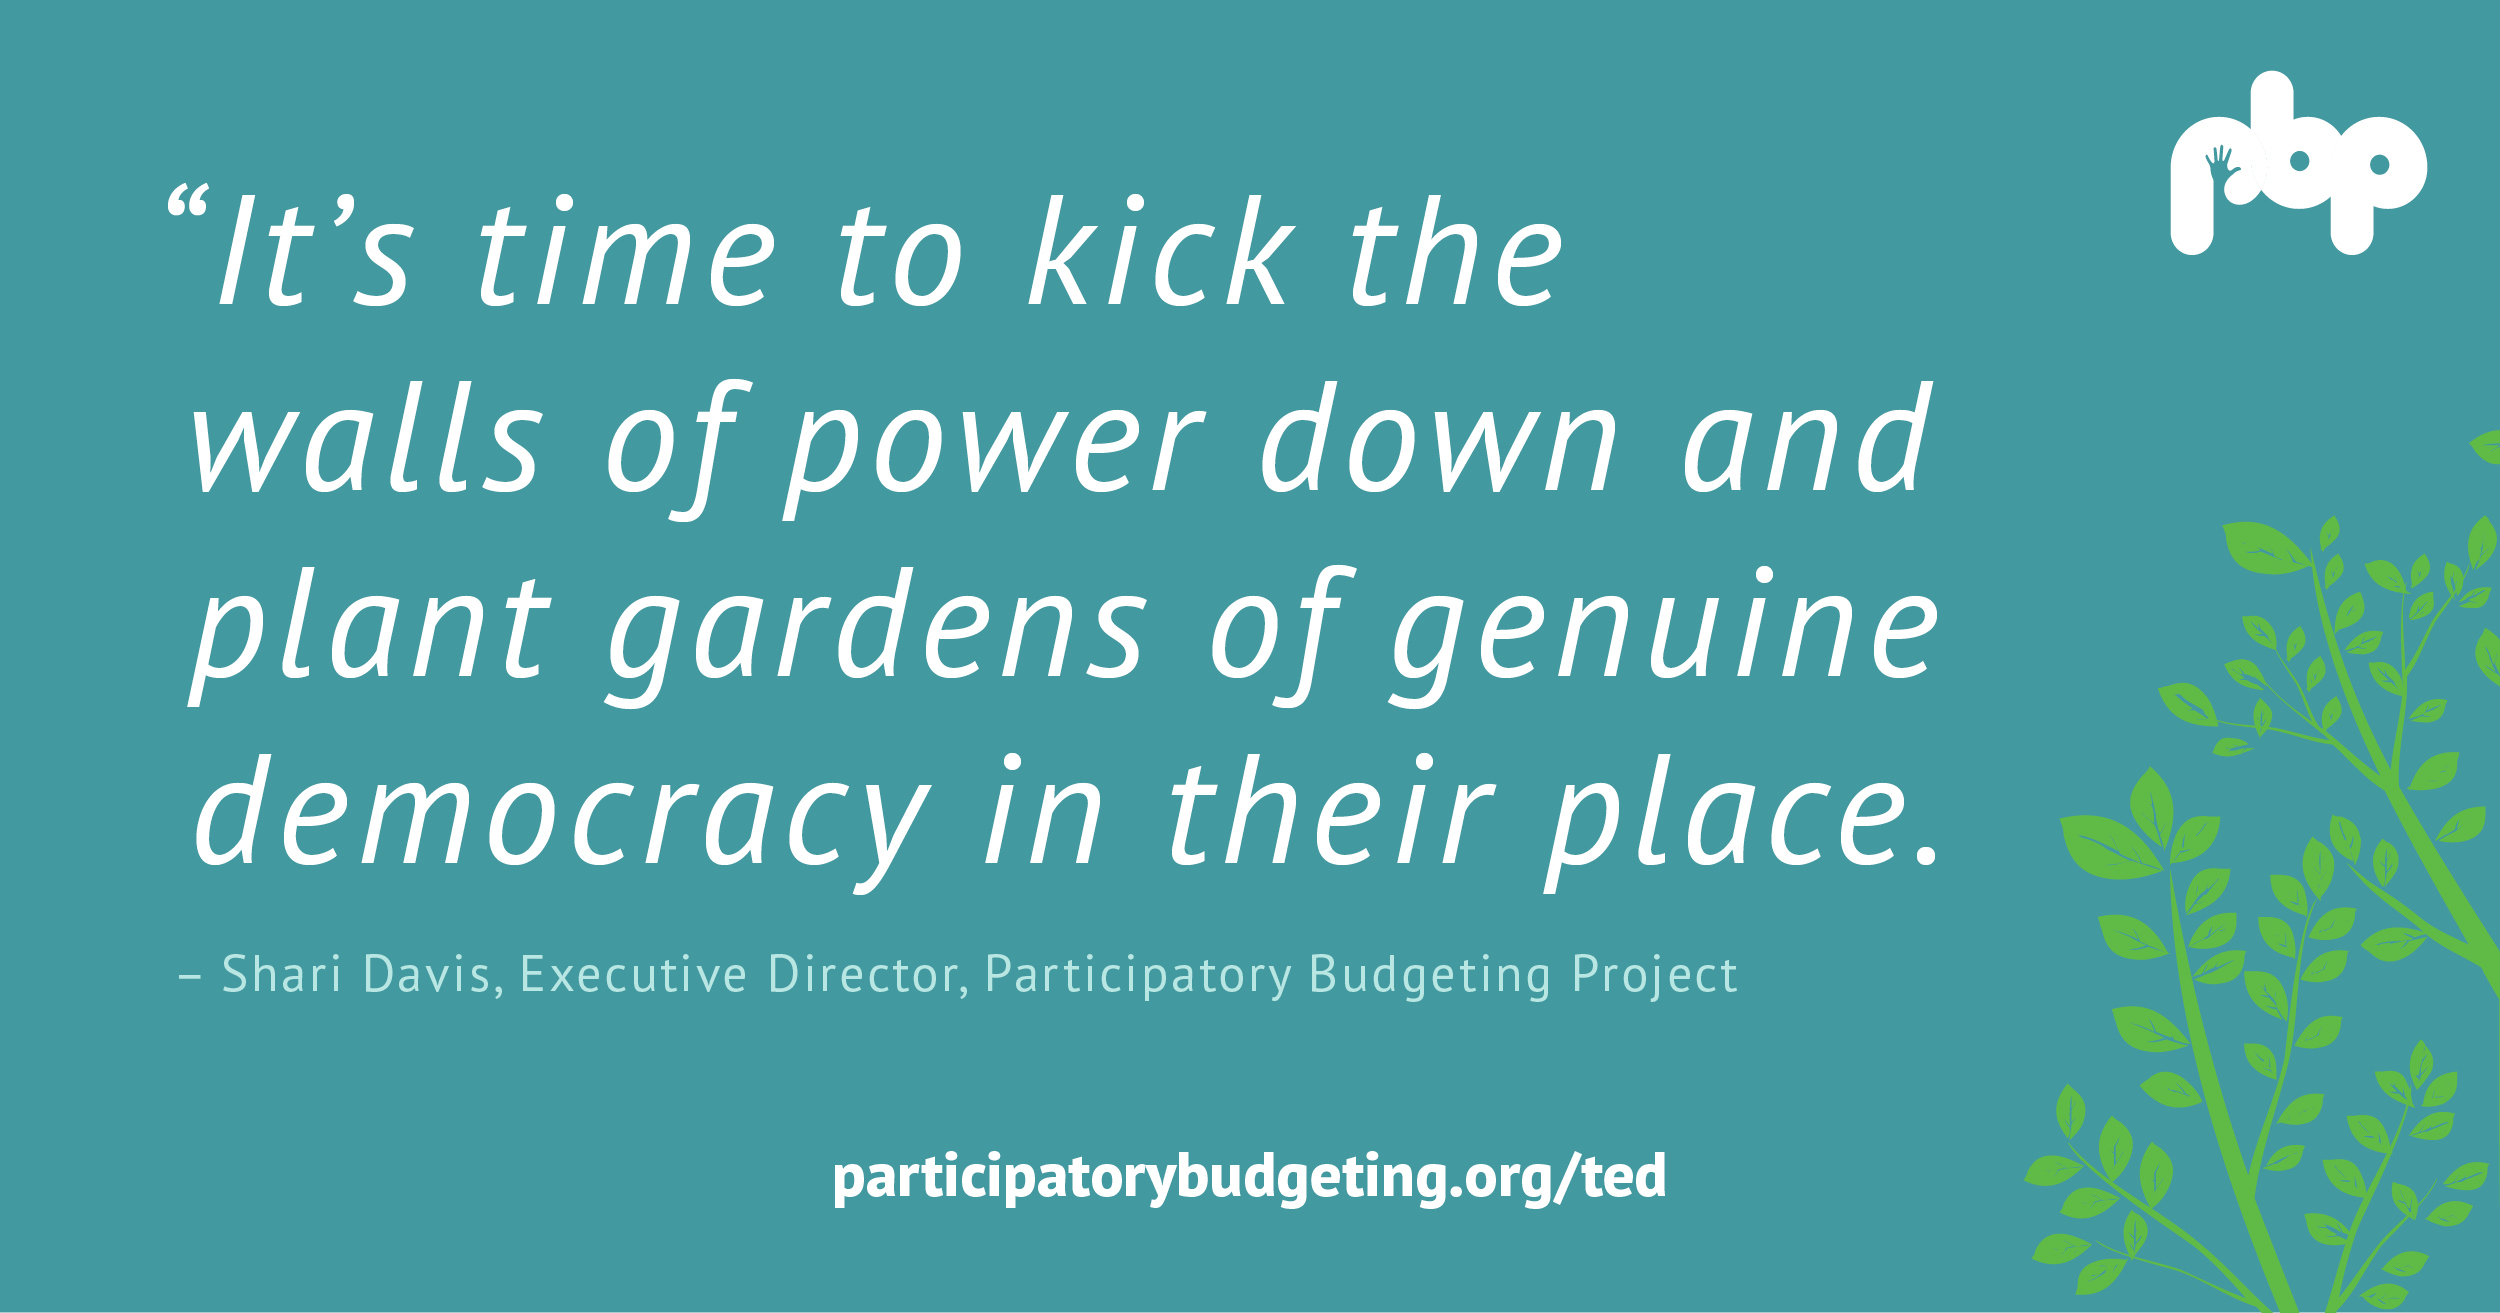 It's time to kick the walls of power down and plant gardens of genuine democracy in their place. - Shari Davis